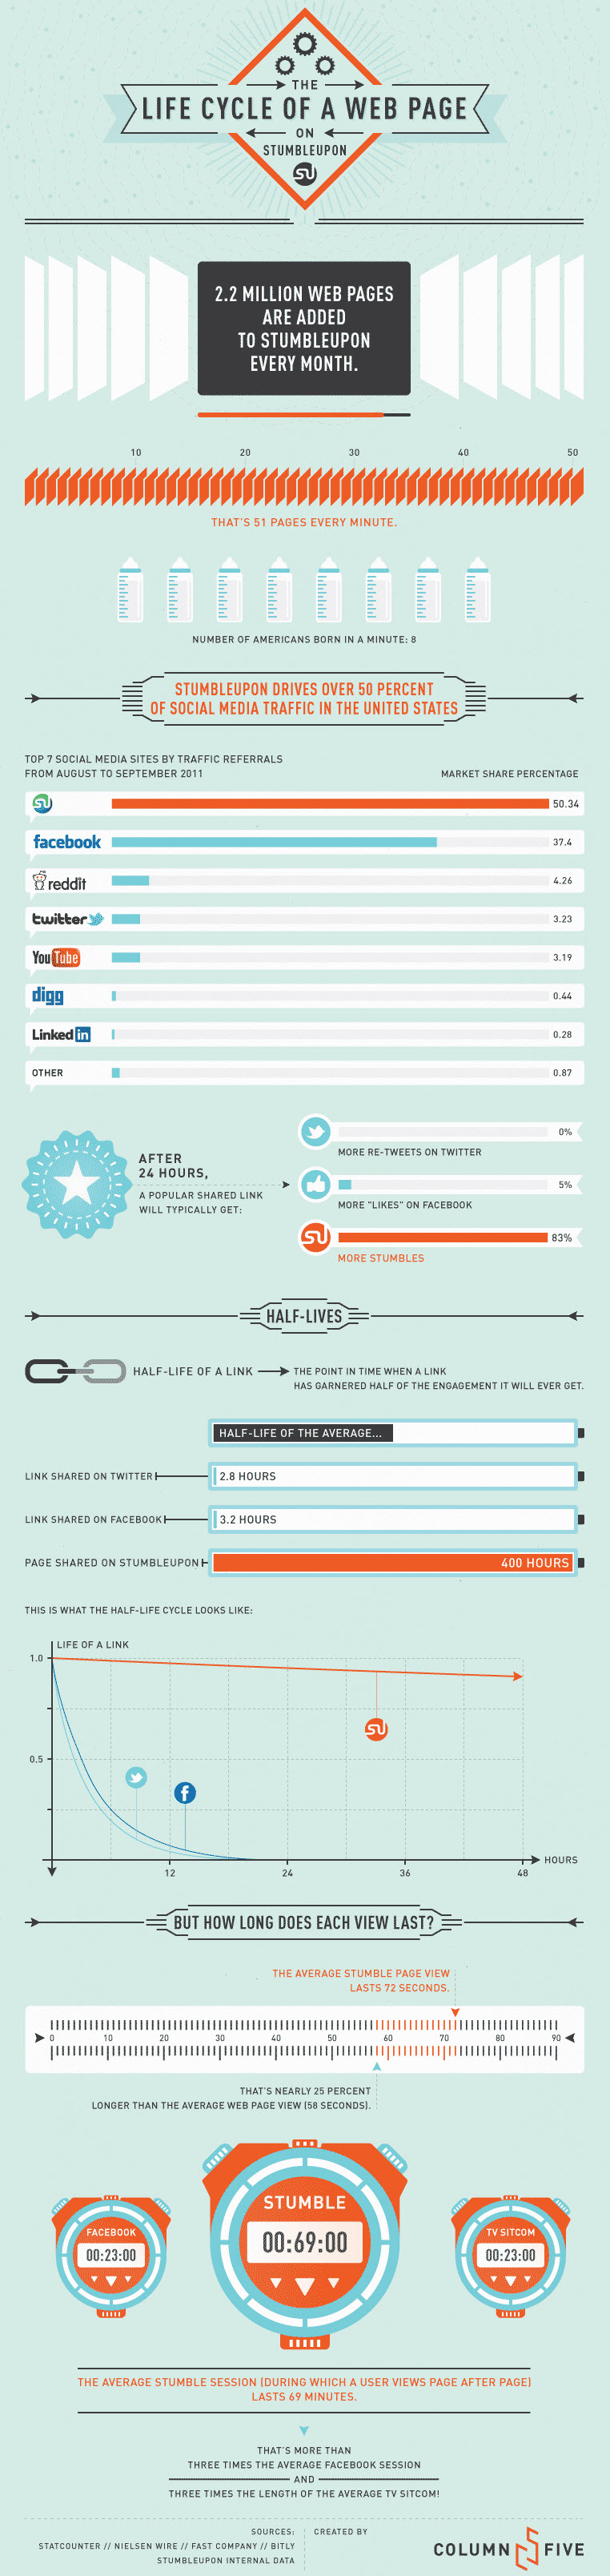 StumbleUpon-Social-Media-Infographic